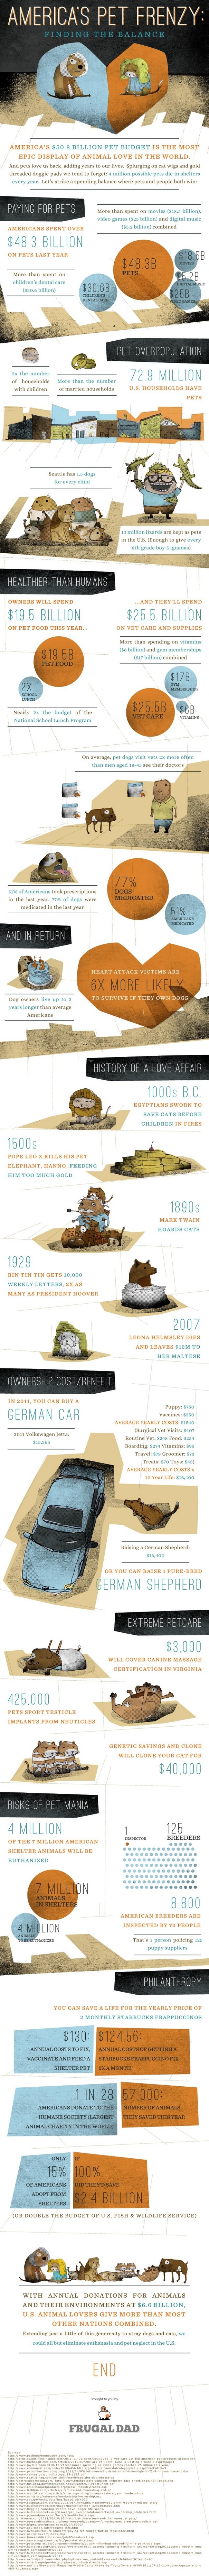 Americas Pet Frenzy Infographic